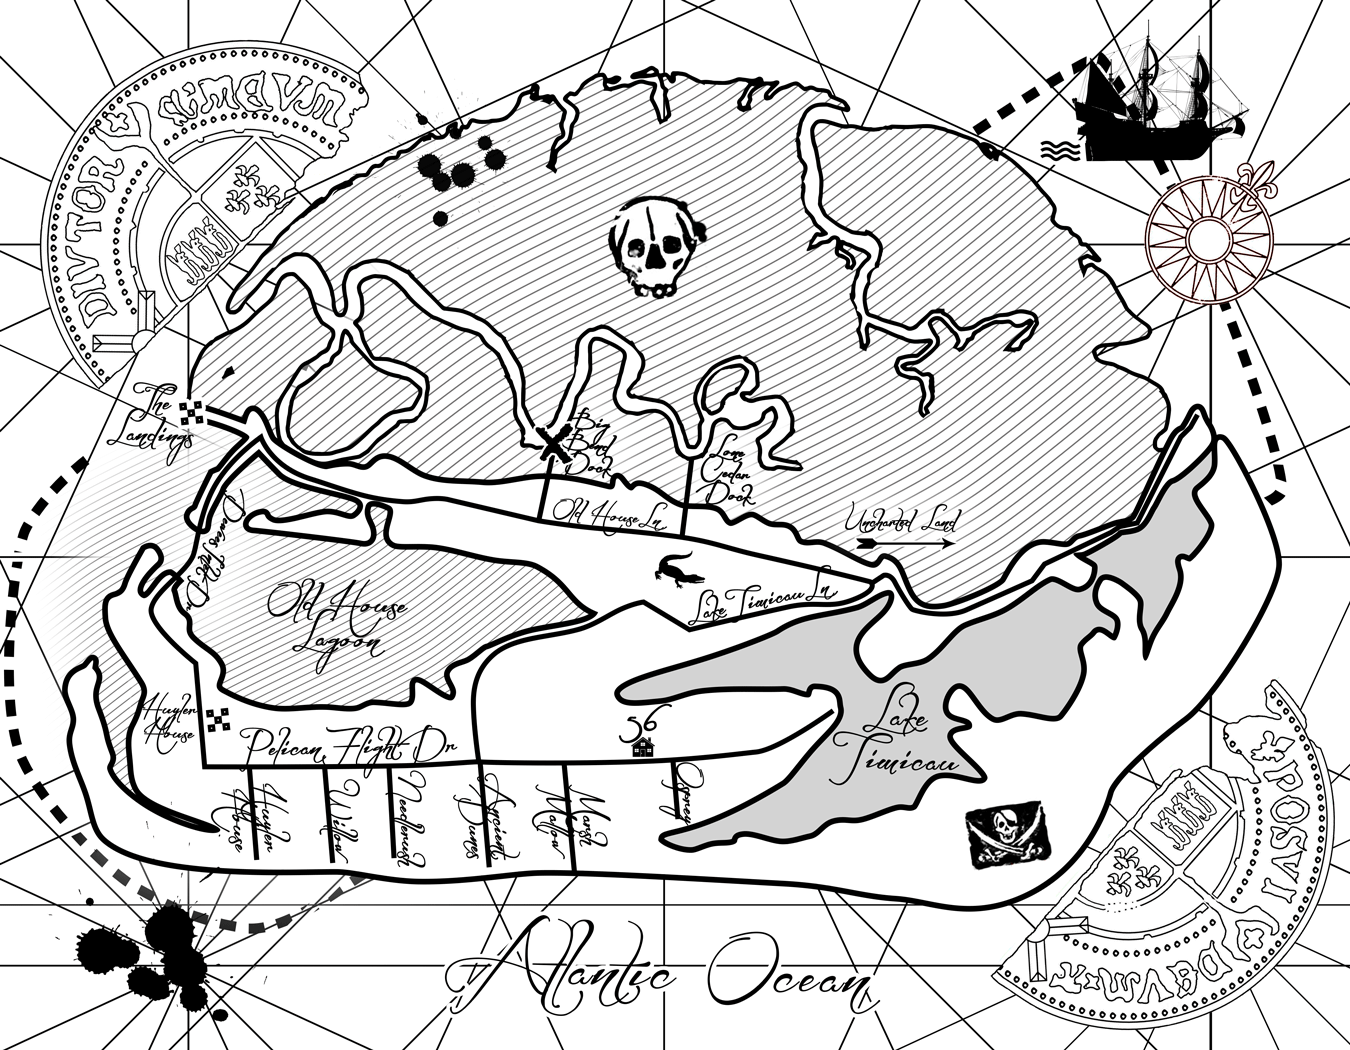 A custom map designed for a scavenger hunt event on an undisclosed island in the Atlantic ocean.  Designed in Illustrator and printed on leather.